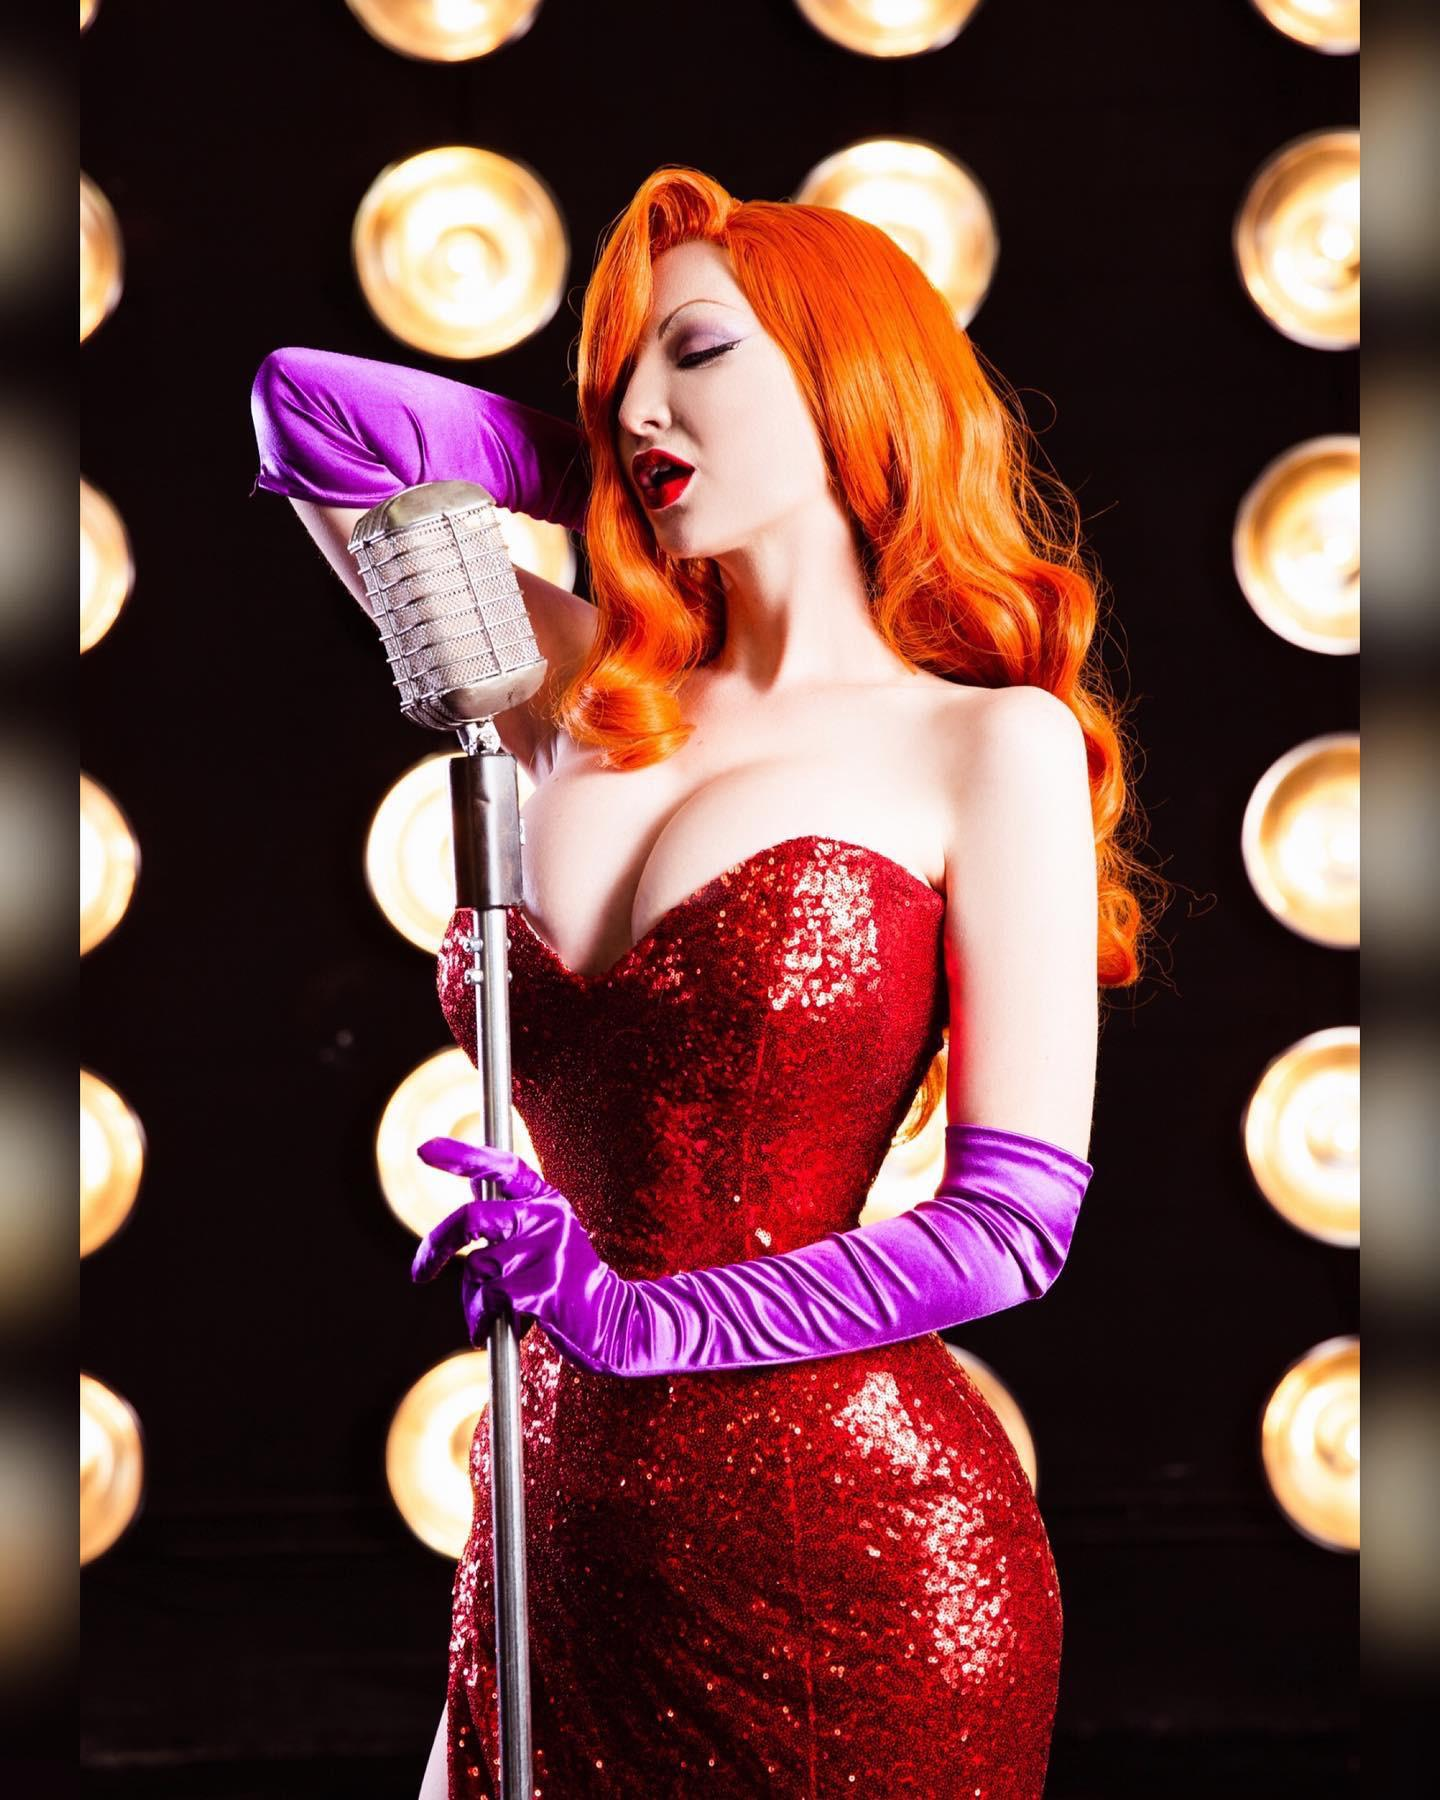 Jessica Rabbit By Ashlynne Dae